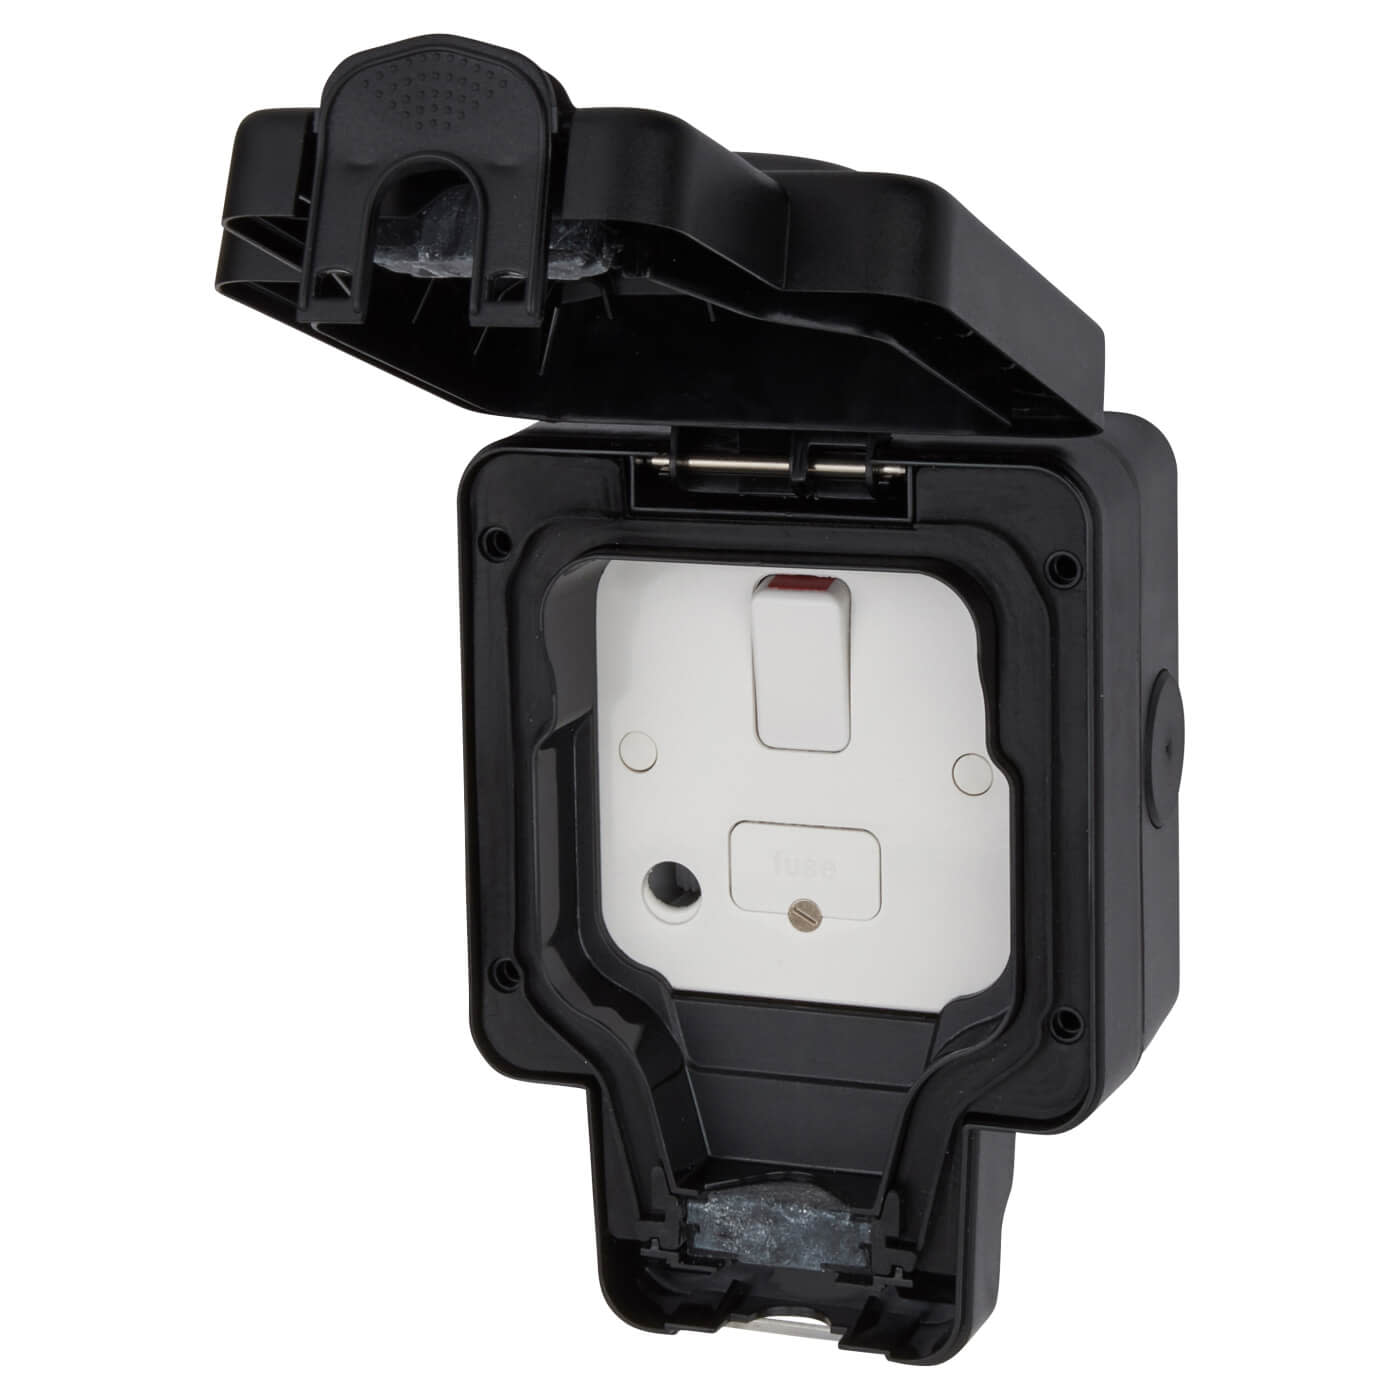 MK Masterseal Plus 13A IP66 1 Gang Outdoor Switched Fused Spur - Black)